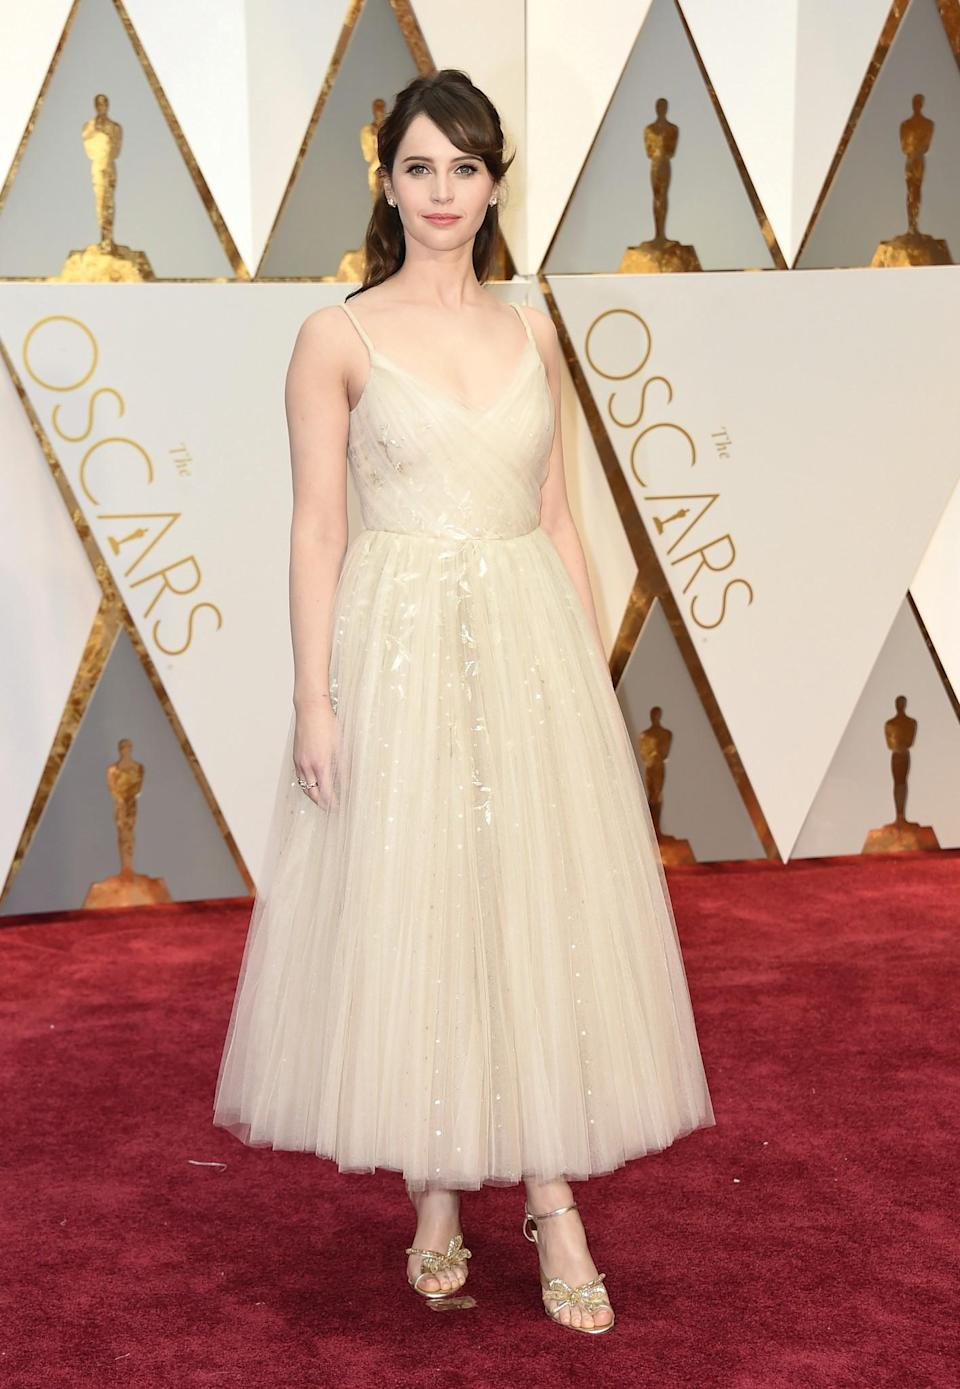 <p>Actress Felicity Jones arrives at the Oscars on Sunday, Feb. 26, 2017, at the Dolby Theatre in Los Angeles. (Photo by Jordan Strauss/Invision/AP) </p>